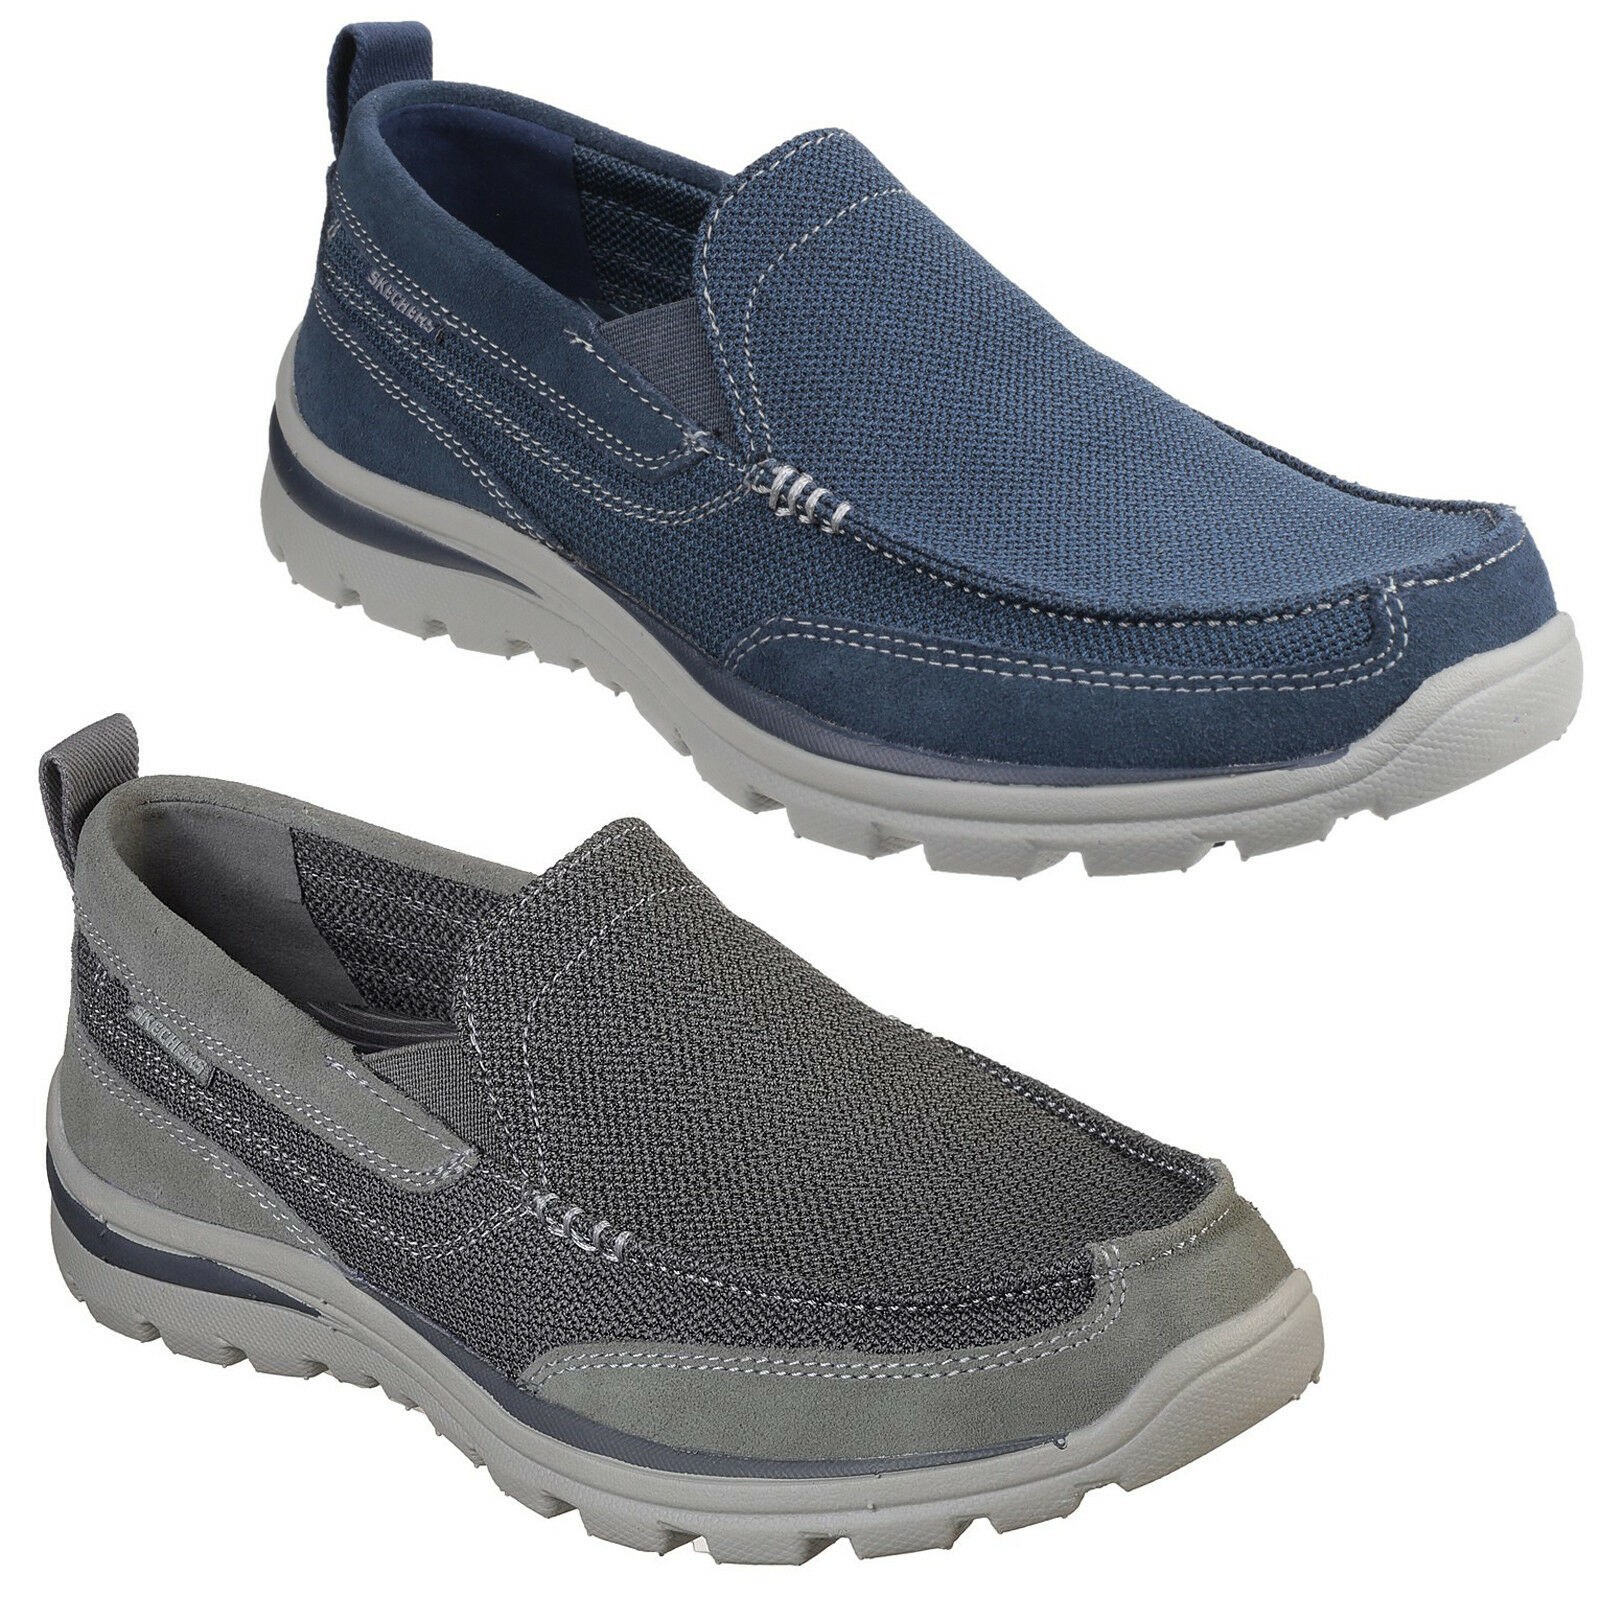 Skechers Relaxed Fit: Superior-Milford Chaussures 64365 Homme Mousse à Mémoire De Forme Baskets